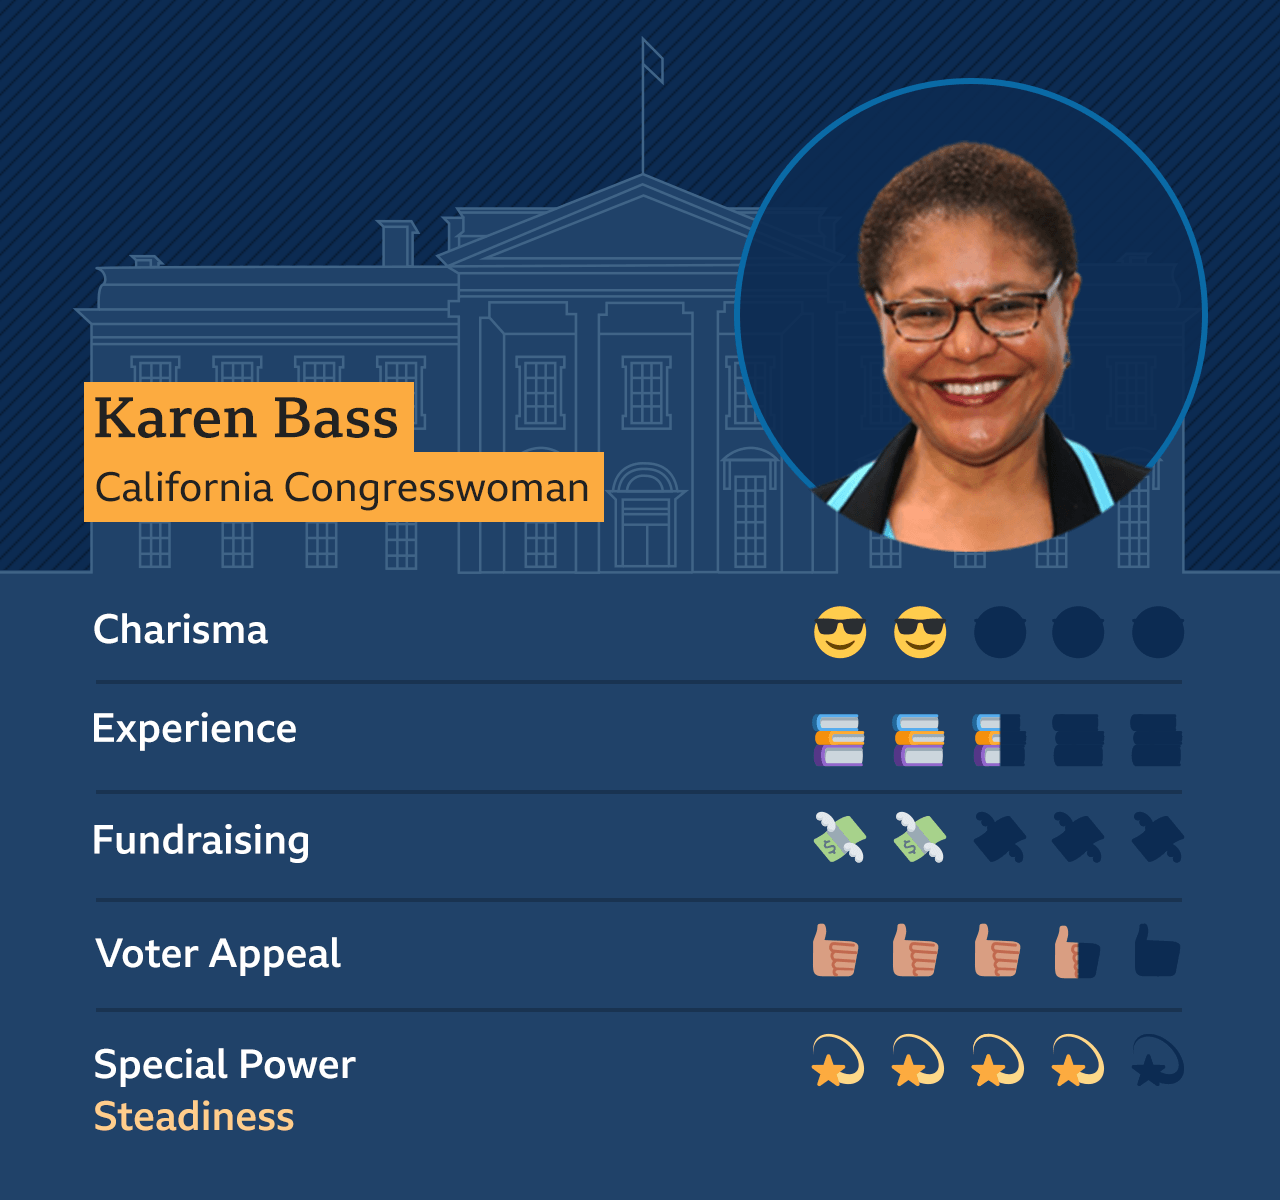 Graphic of Karen Bass, California congresswoman: Charisma - 2, Experience - 2.5, Fundraising - 2, Voter appeal - 3.5, Special Power - Steadiness - 4